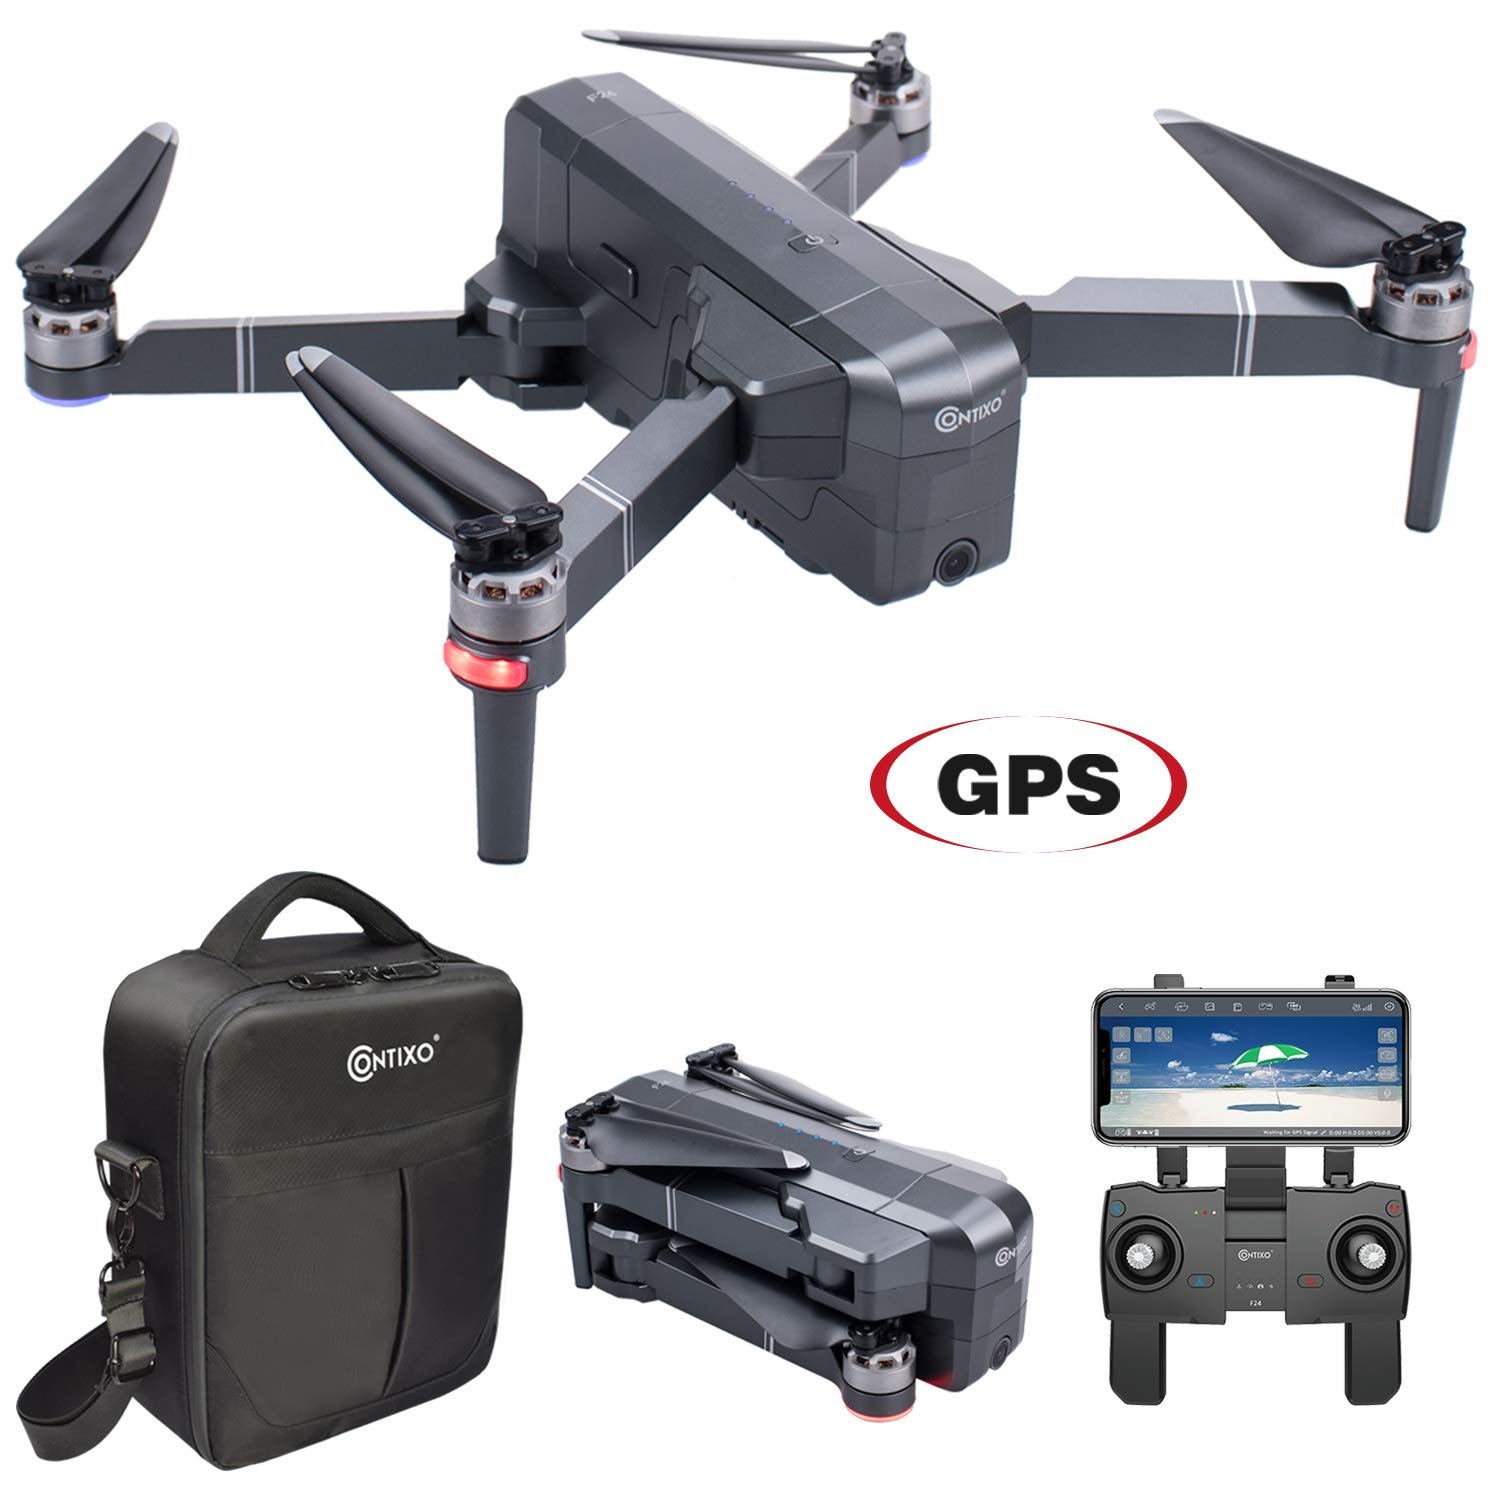 Contixo F24 Brushless Foldable Quadcopter Drone | Selfie, Gesture, Gimbal 5GHz 1080P WiFi Camera, GPS, Auto Hover, Follow Me, Waypoint 30 Minutes Flying Time Includes Storage Case (F24) by Contixo